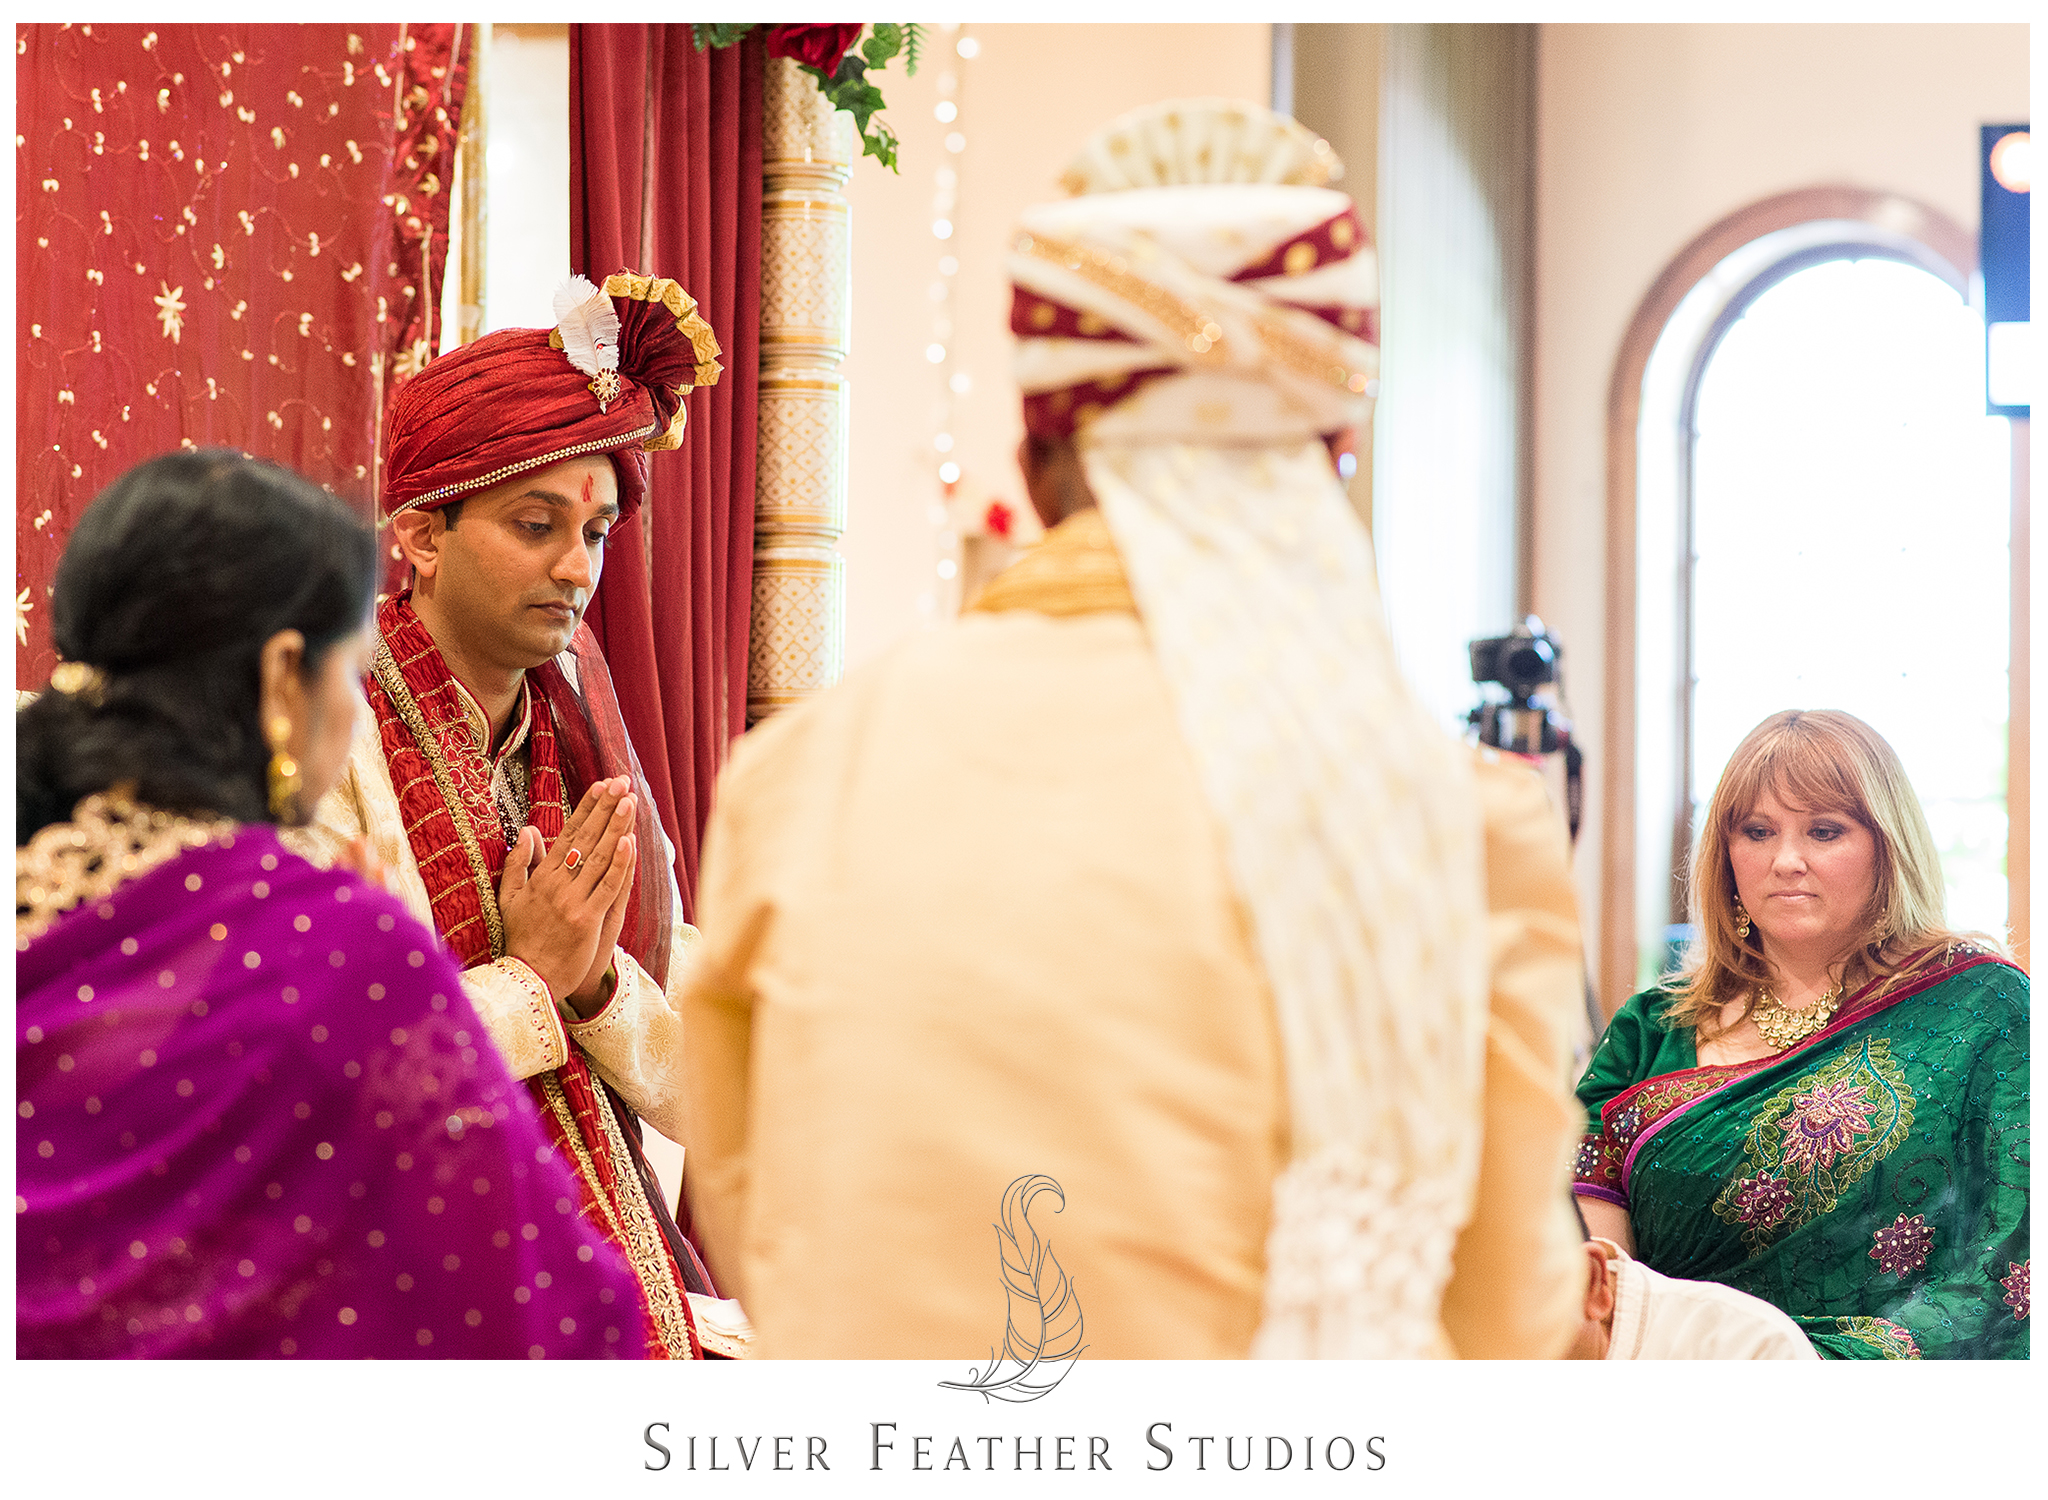 Burlington, NC wedding photo and video company documents this Indian wedding in Raleigh.